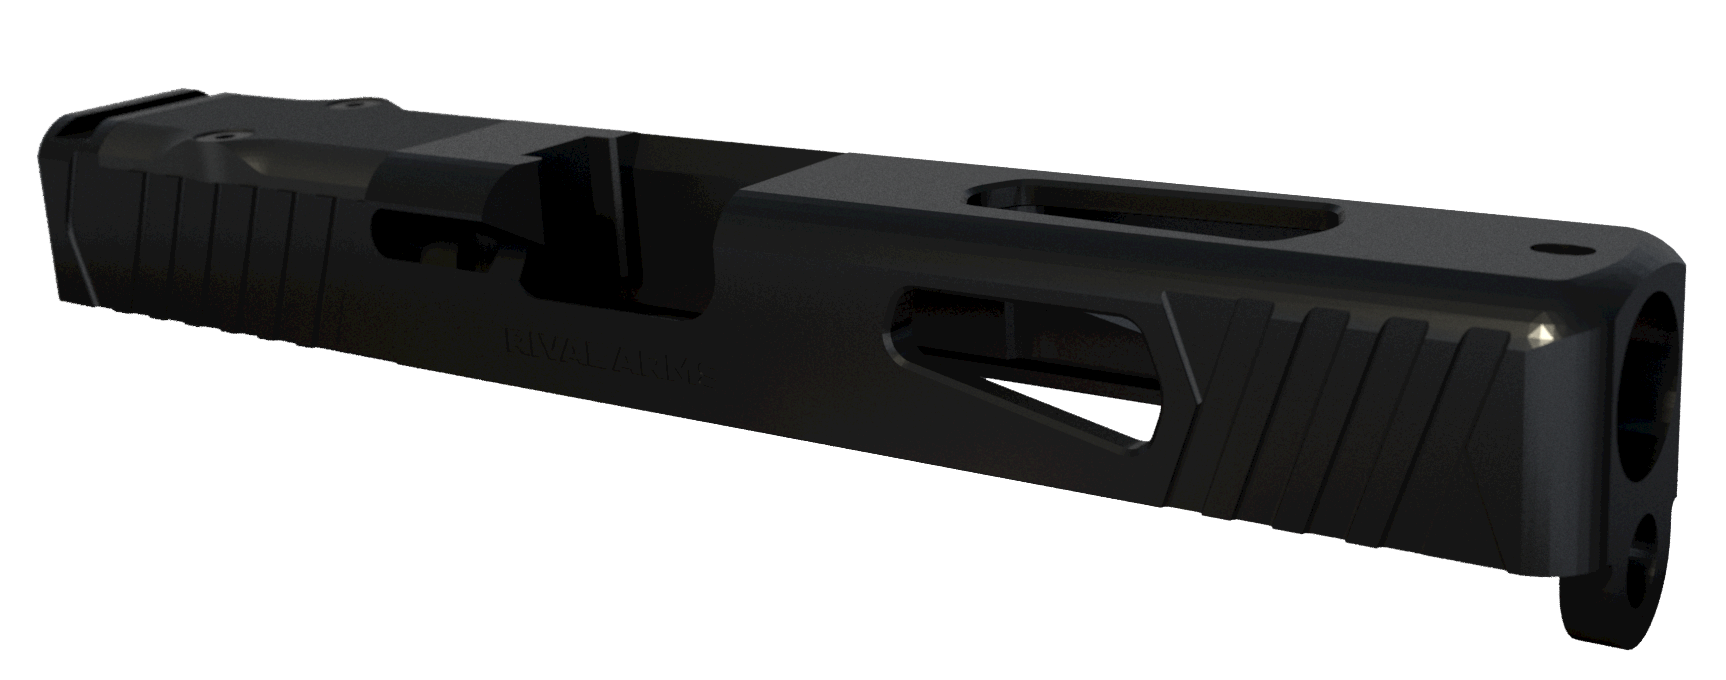 Rival Arms Precision Slide - Compatible with Glock 17 Gen 4 - RMR Ready